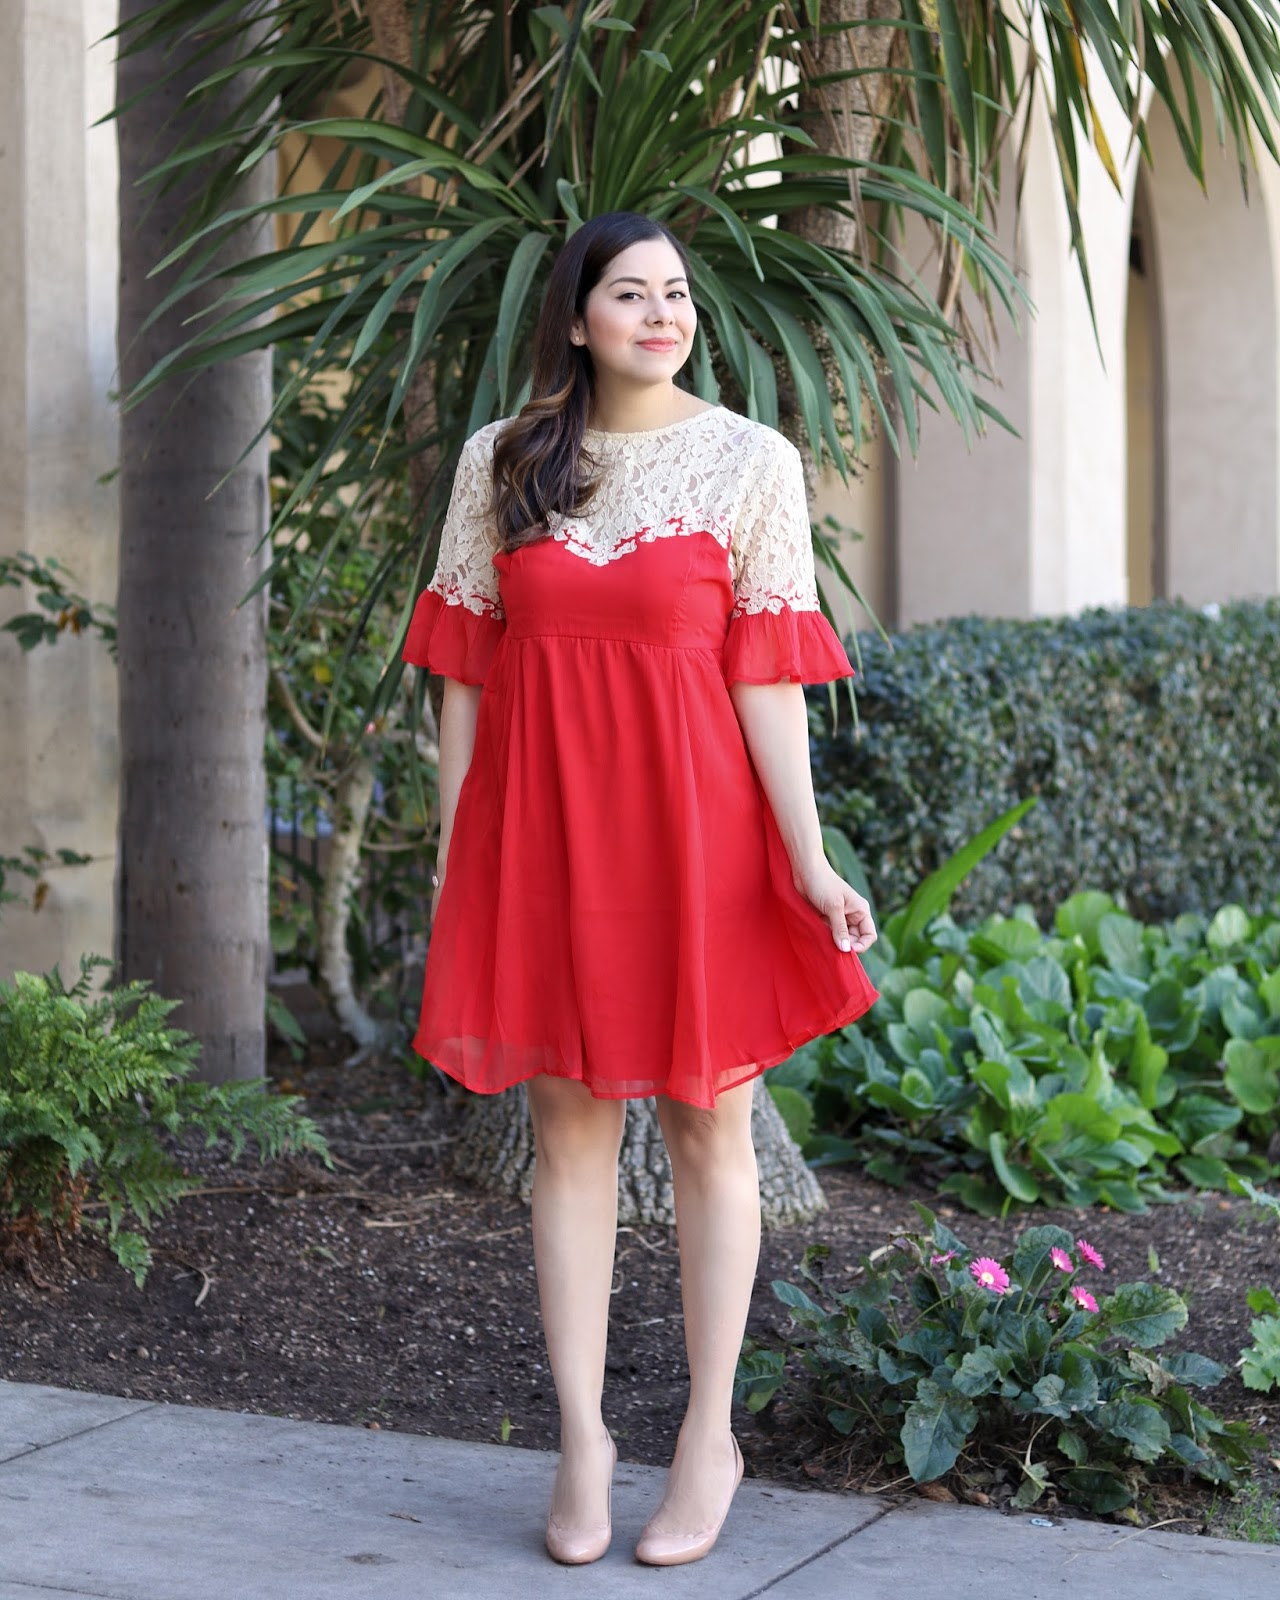 Red cocktail dress, how to wear a red dress, what to wear to a wedding